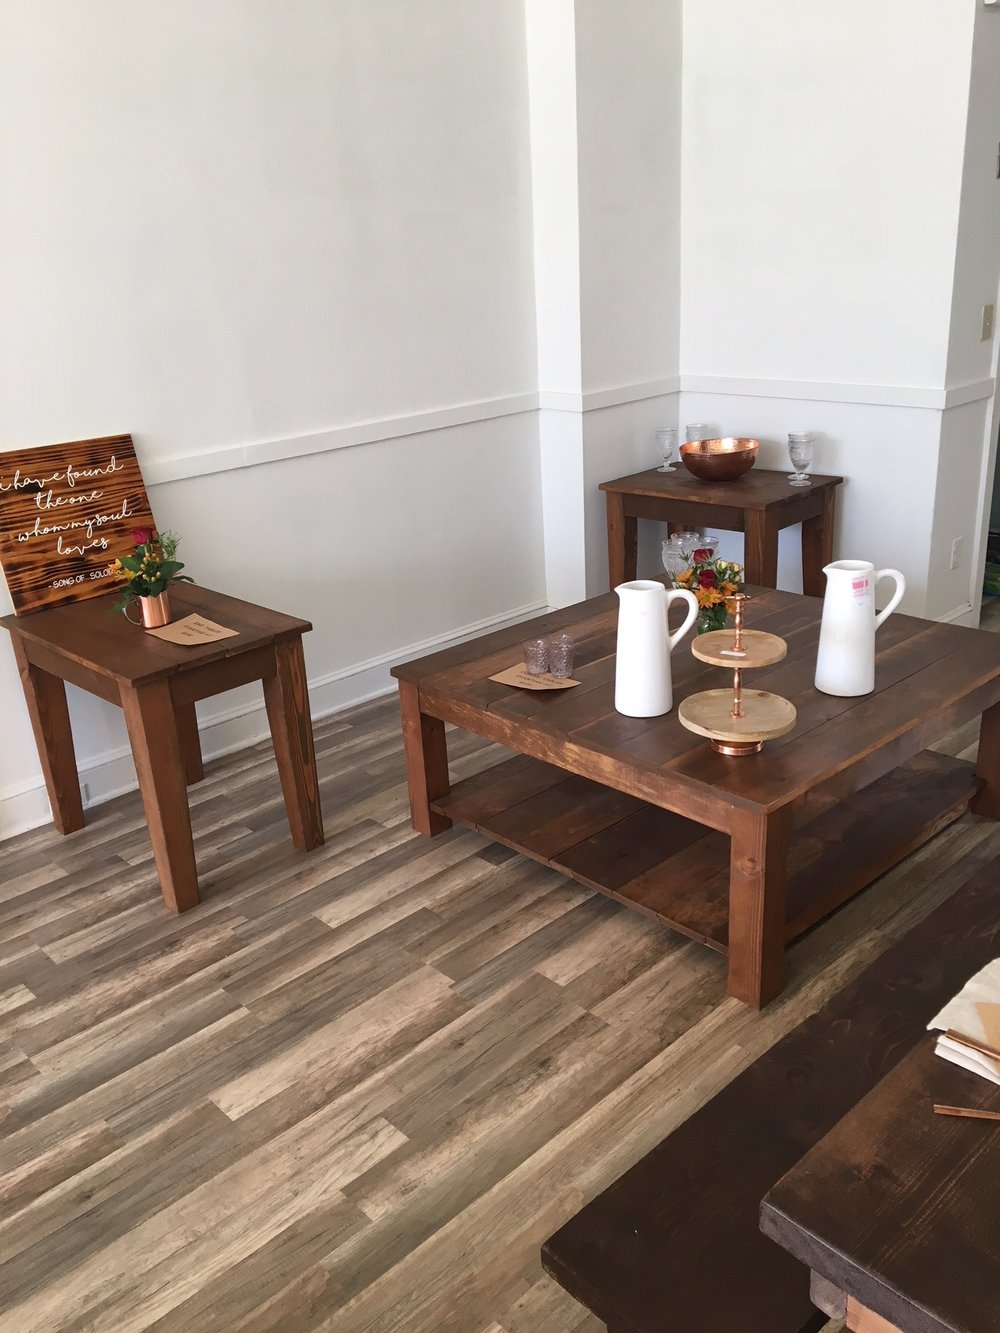 coffee and end table set.JPG